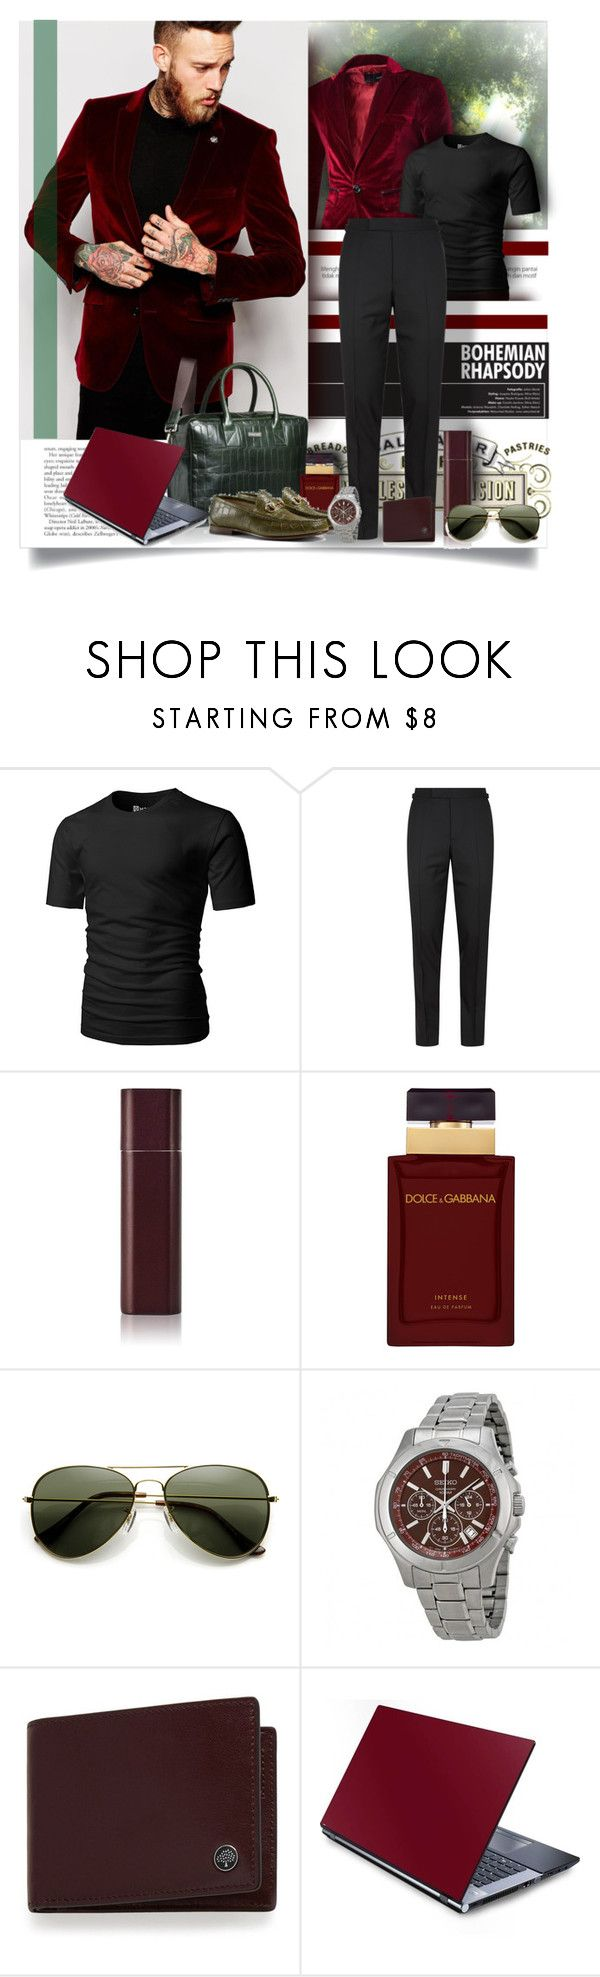 """""""Green and Burgundy"""" by angelflair ❤ liked on Polyvore featuring Trilogy, Tom Ford, Byredo, Dolce&Gabbana, Mulberry, men's fashion, menswear and thebestpolyvorians"""